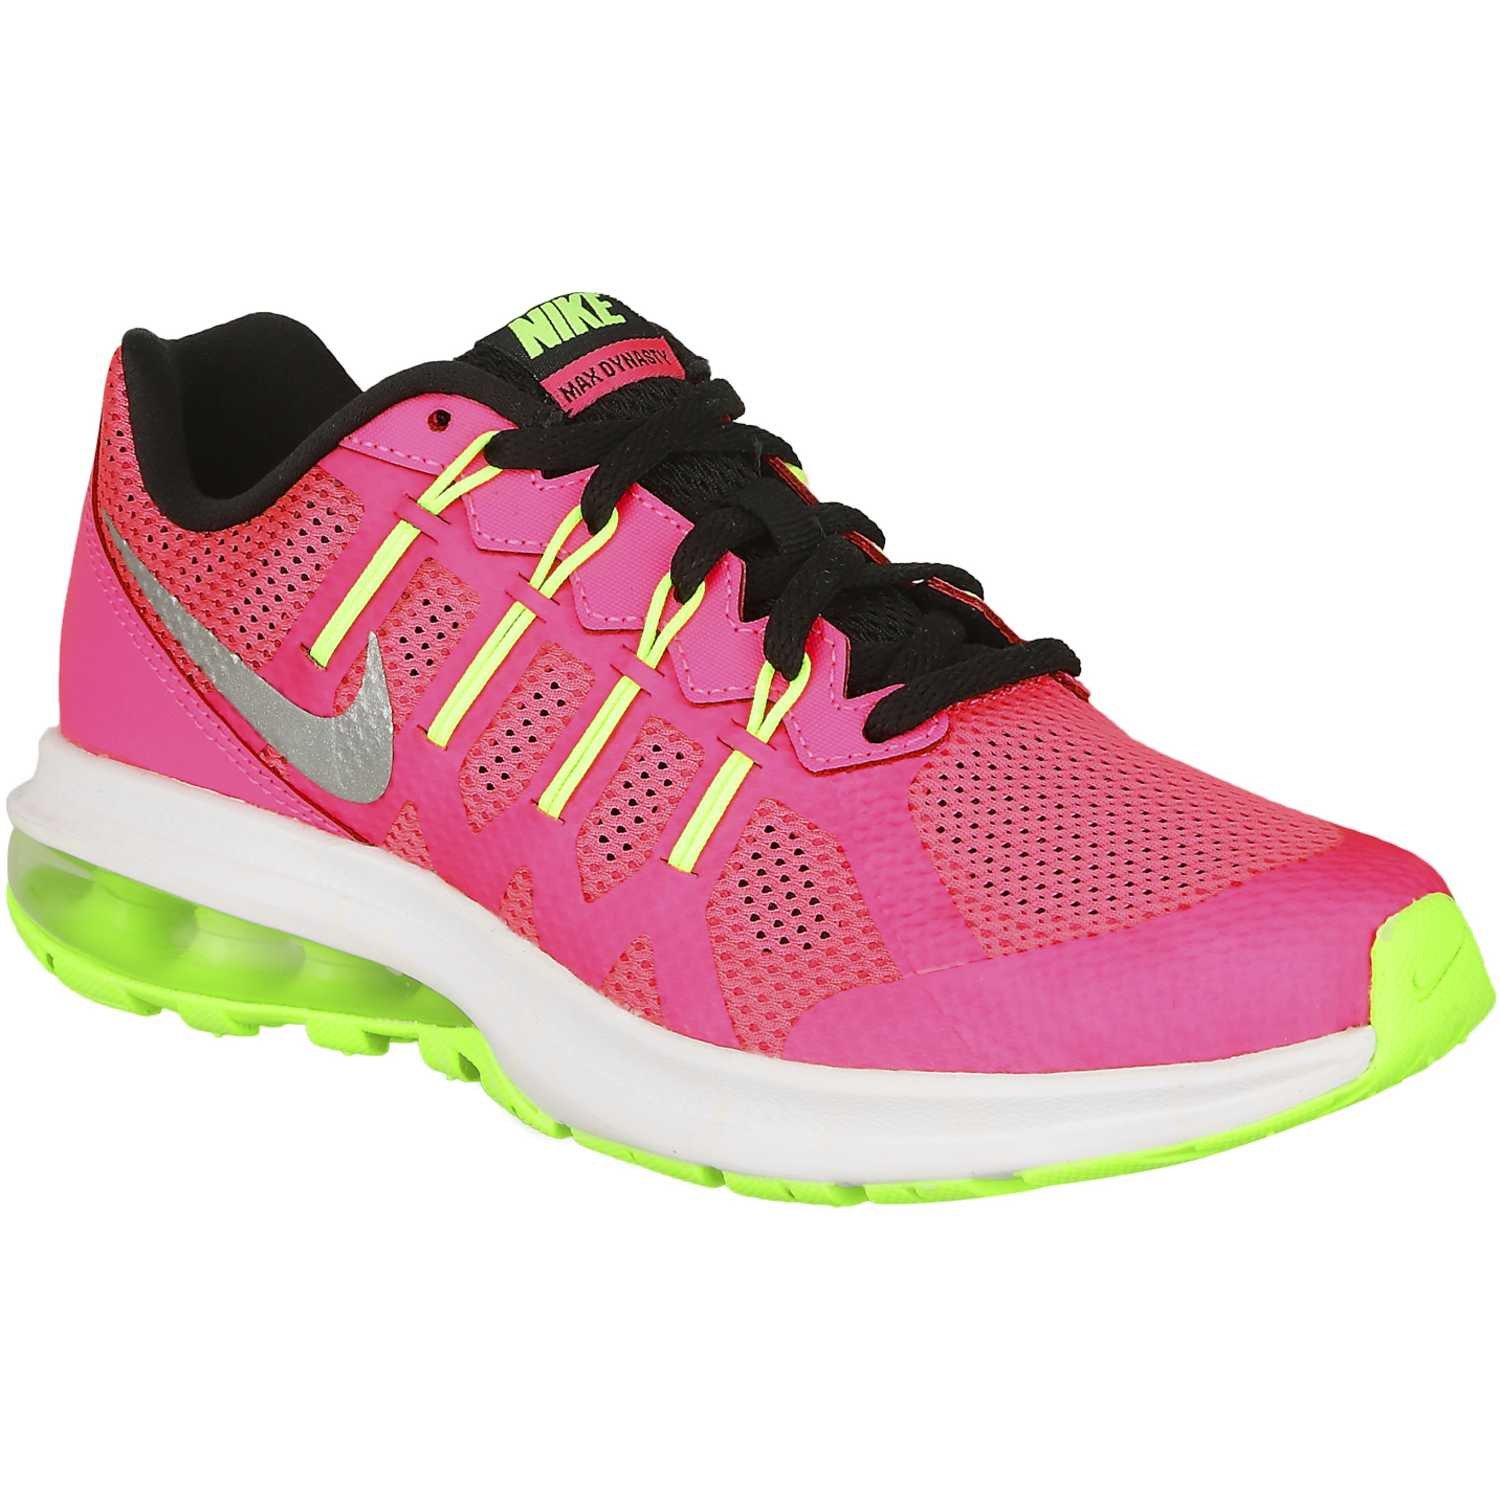 the best attitude b5368 6865f Zapatilla de Jovencita Nike Rosado  Blanco air max dynasty gg